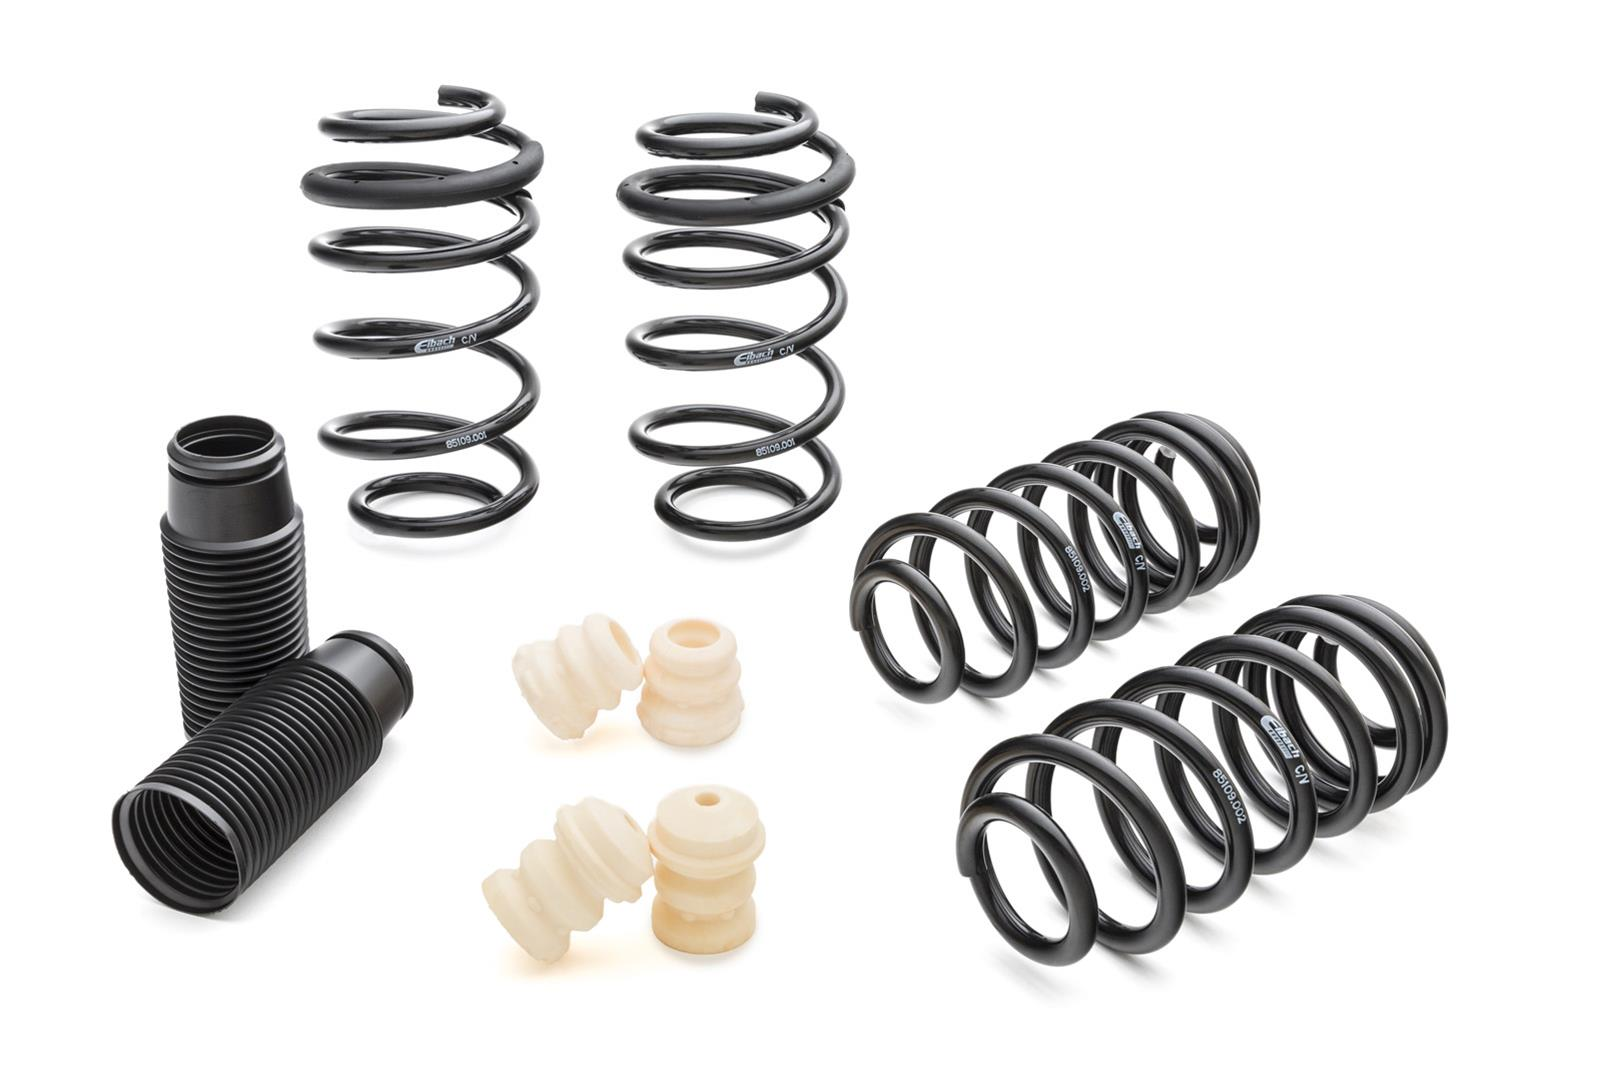 Set of 4 Eibach 4.10182 Sportline Performance Spring Kit,